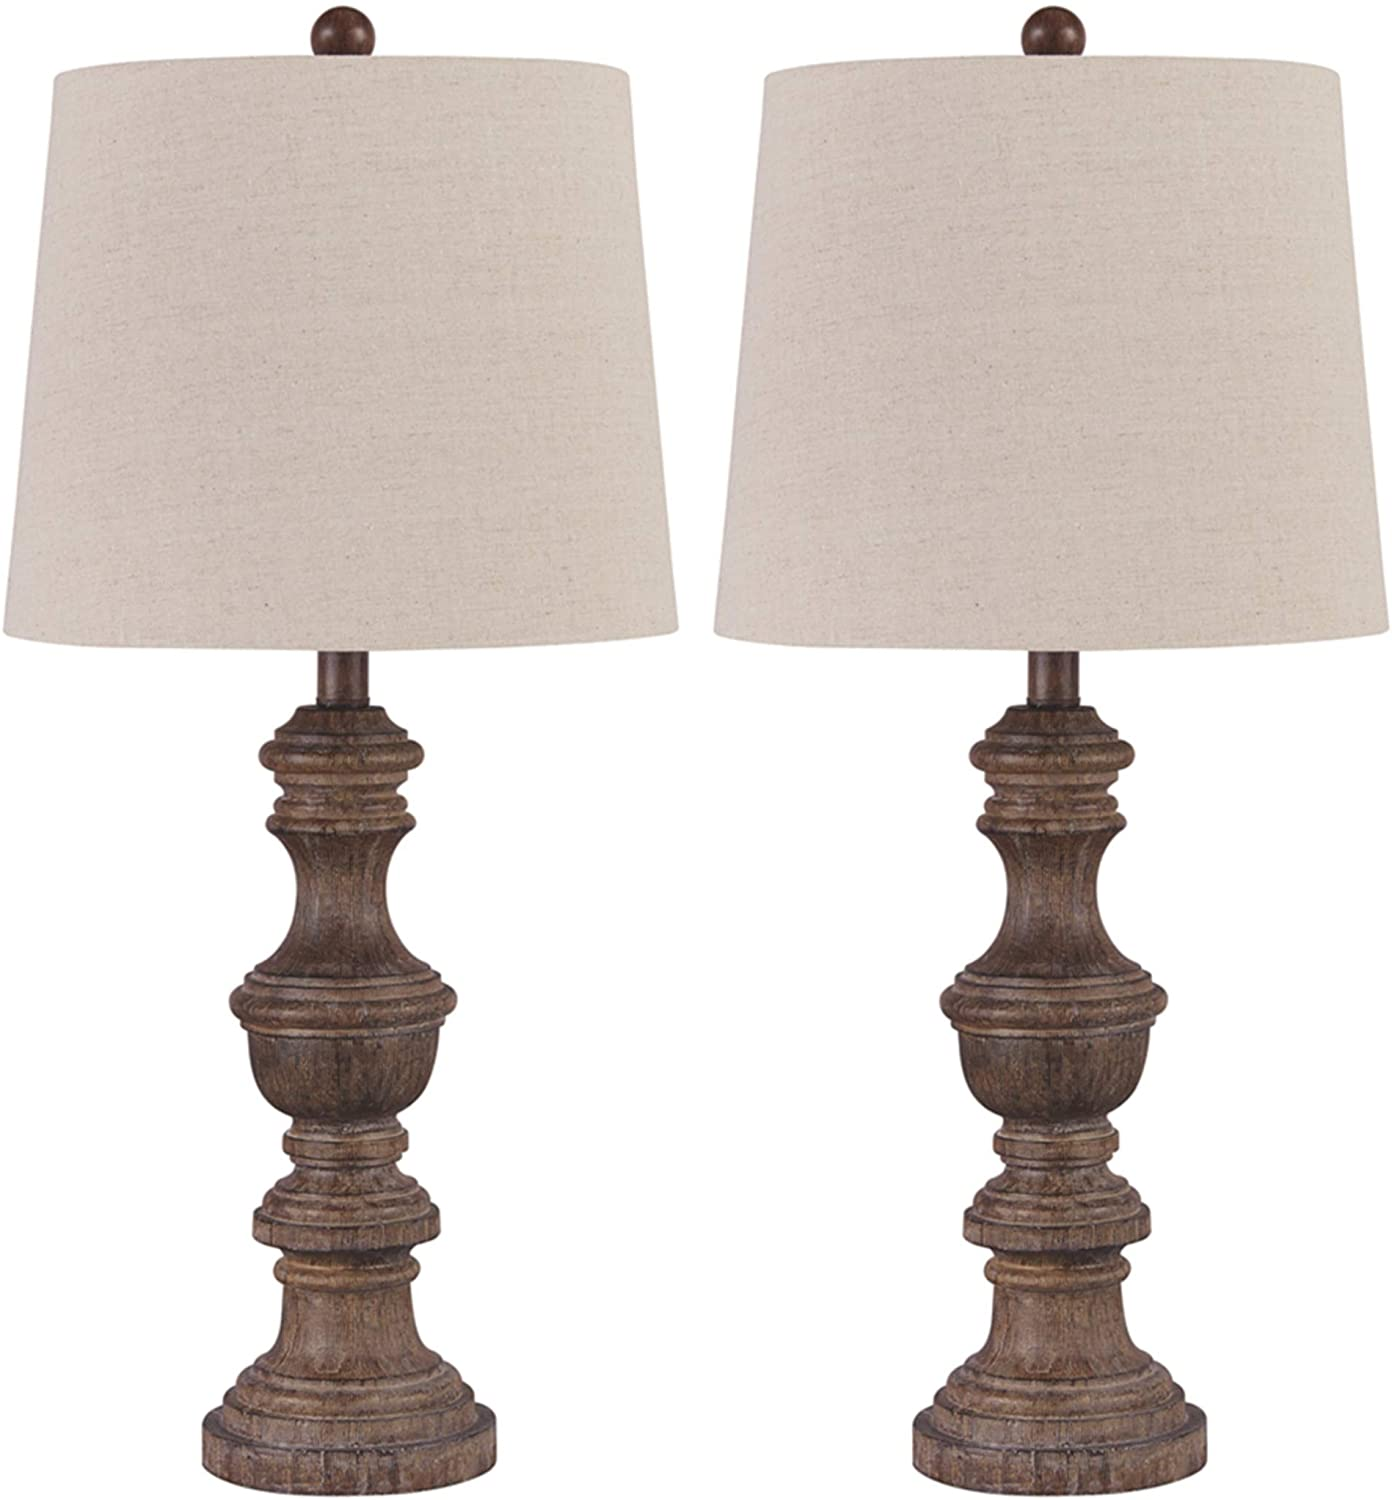 Signature Design by Ashley Magaly Cottage Set 2 Lamp of Table L Large-scale sale National uniform free shipping